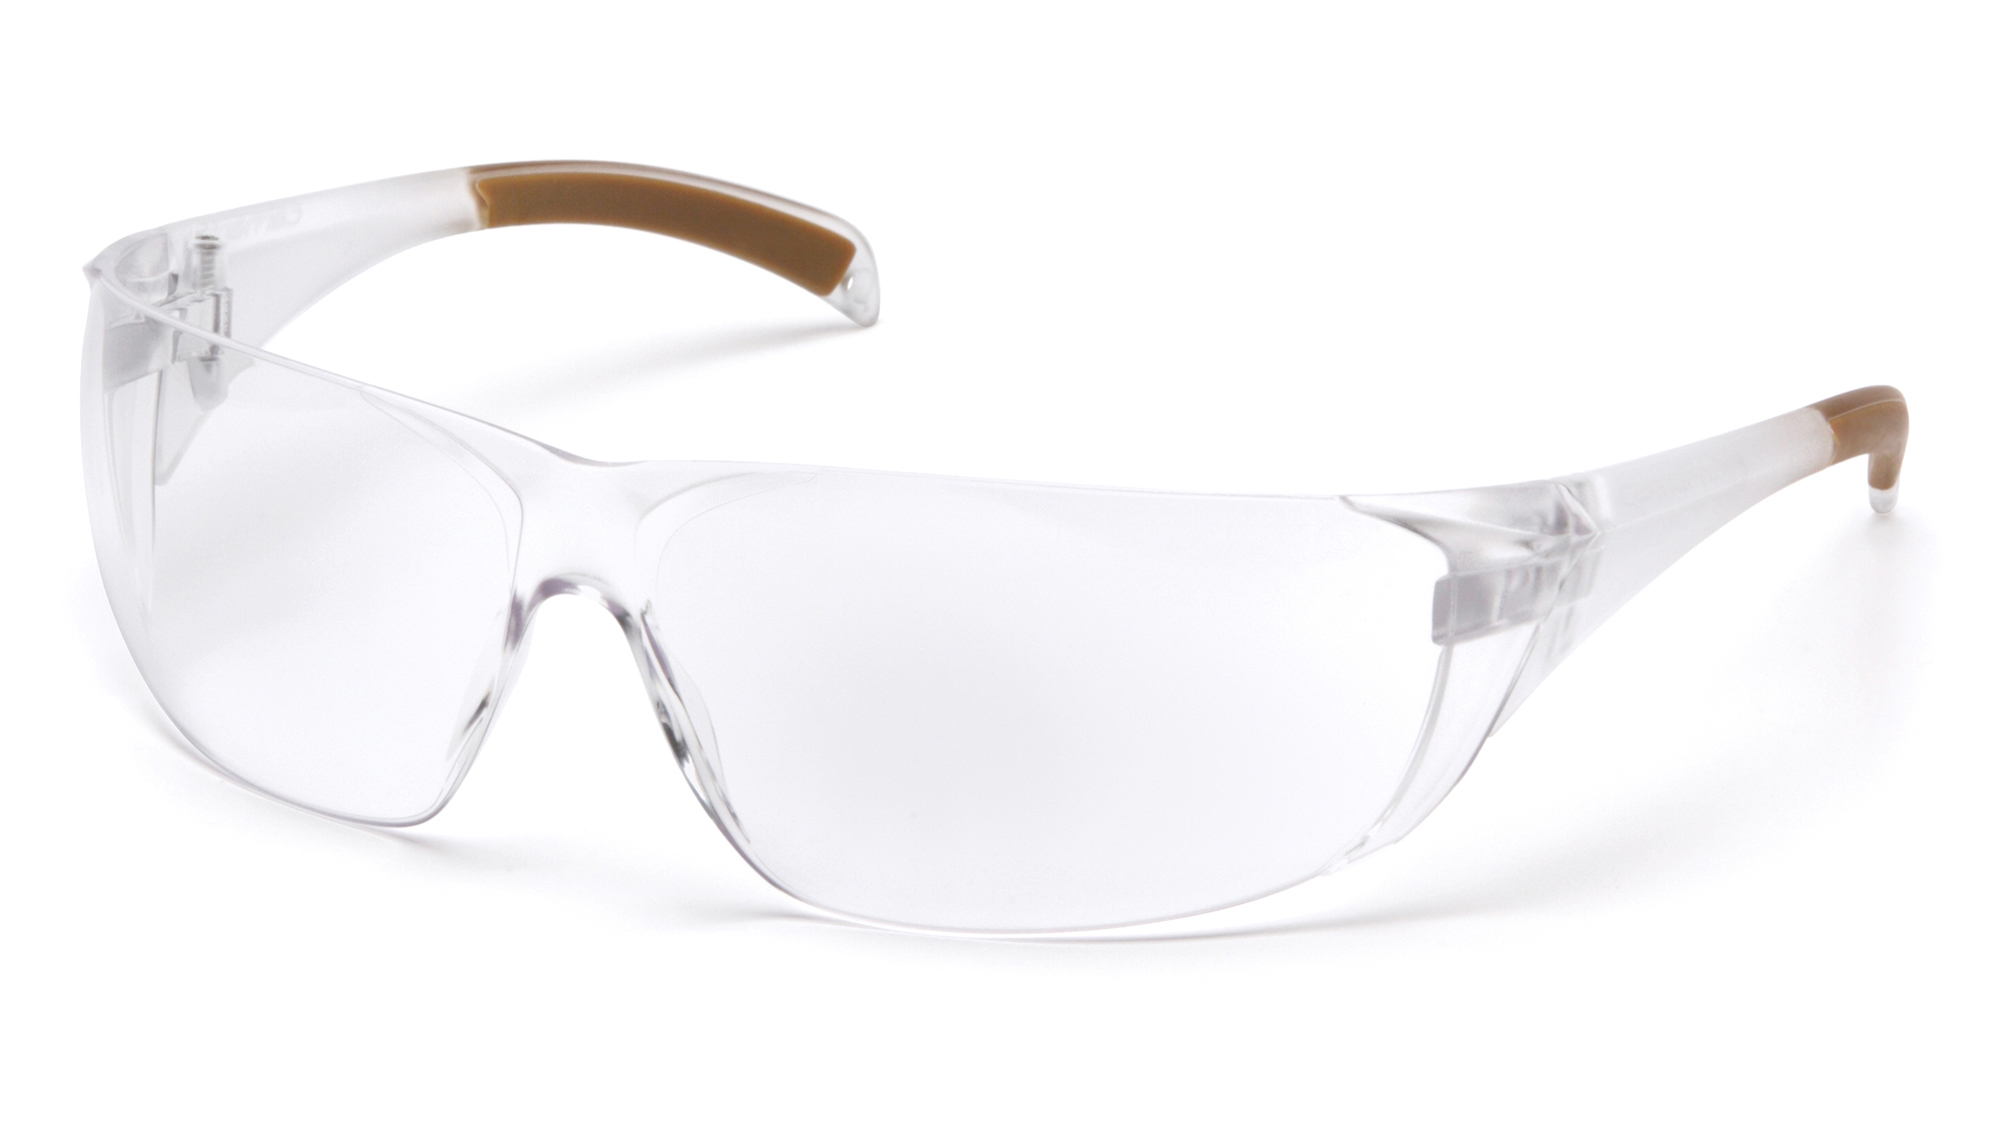 Carhartt Billings Clear Lens Safety Glasses -